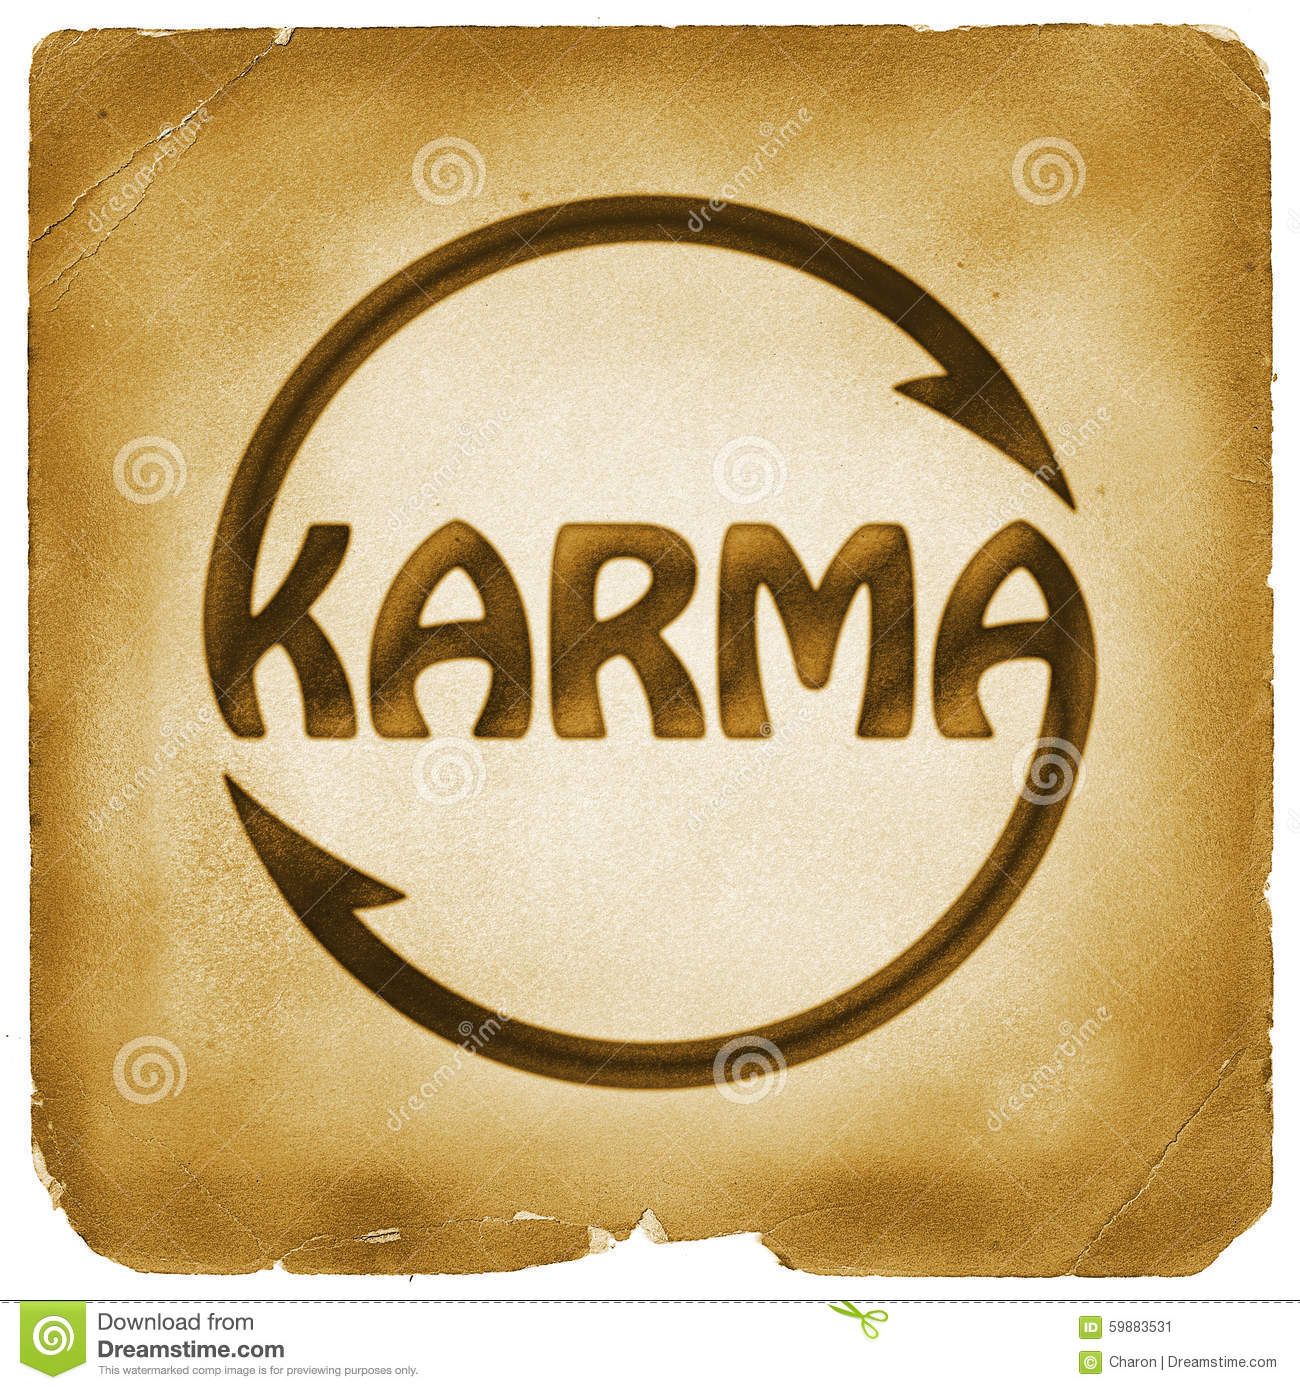 how to give someone karma reddit